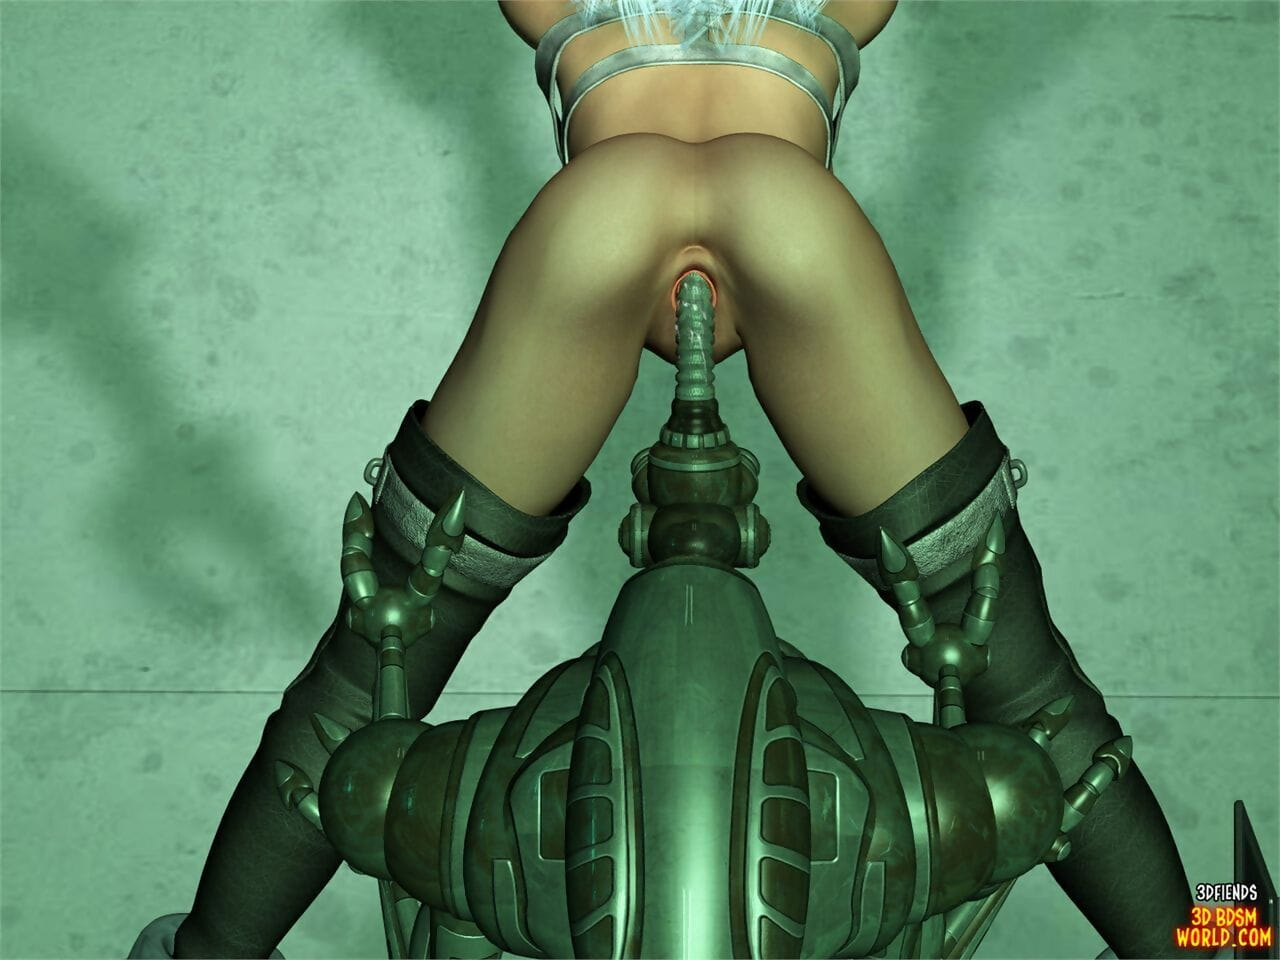 3DFiends 3D BDSM Globe 7 - Lessa Is Tested - fixing 2